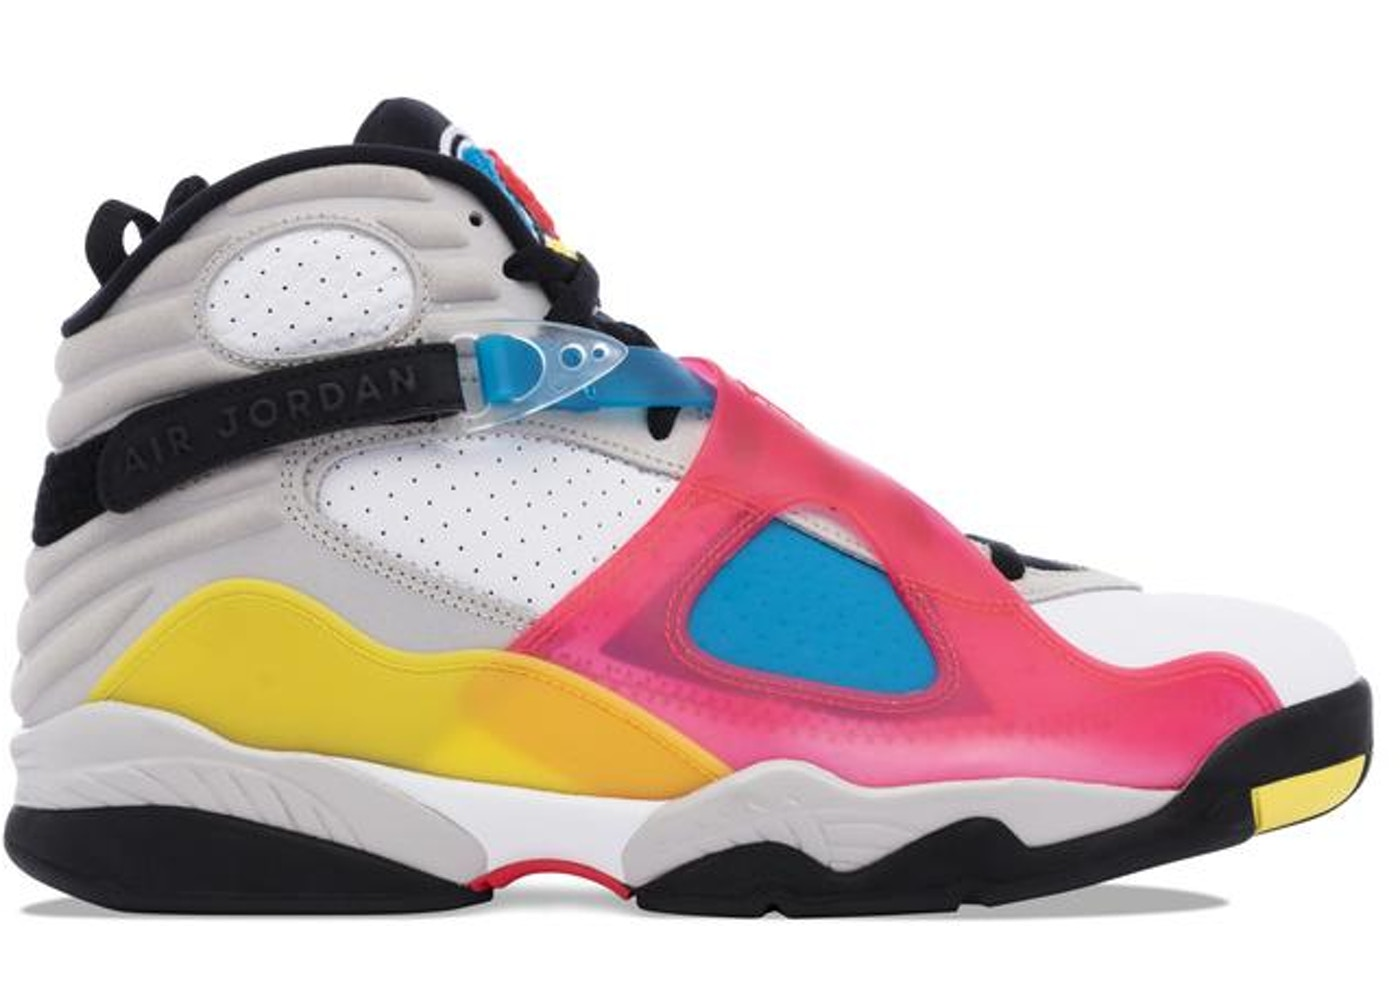 meilleures baskets 180f0 11790 Jordan 8 SP Retro SE White Multicolor